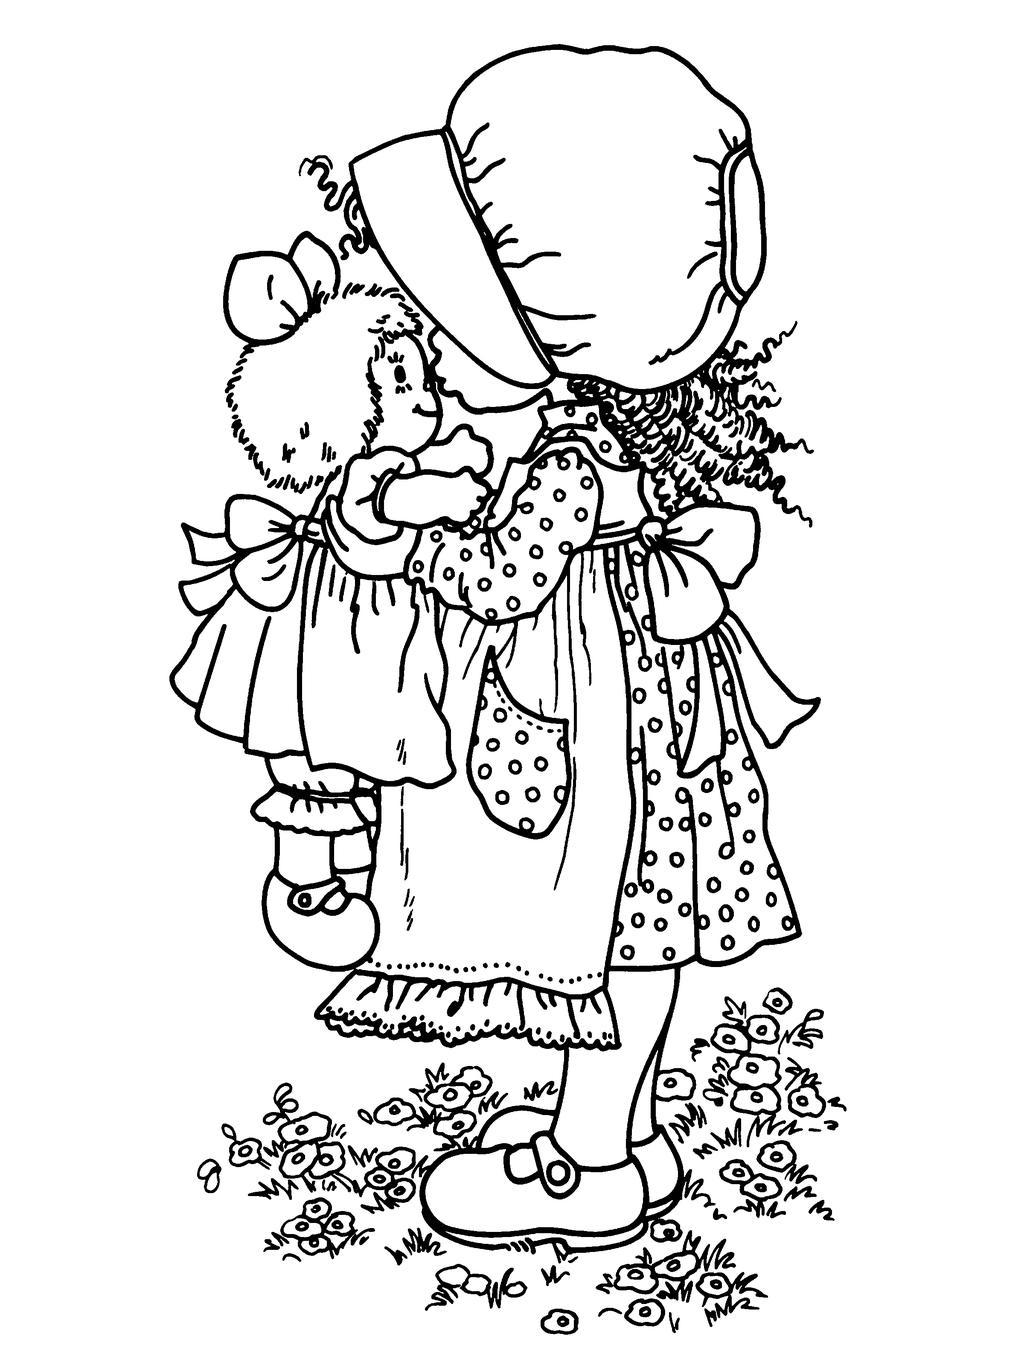 Sarah Kay Coloring Pages iage Gratuit - Free Printable ...